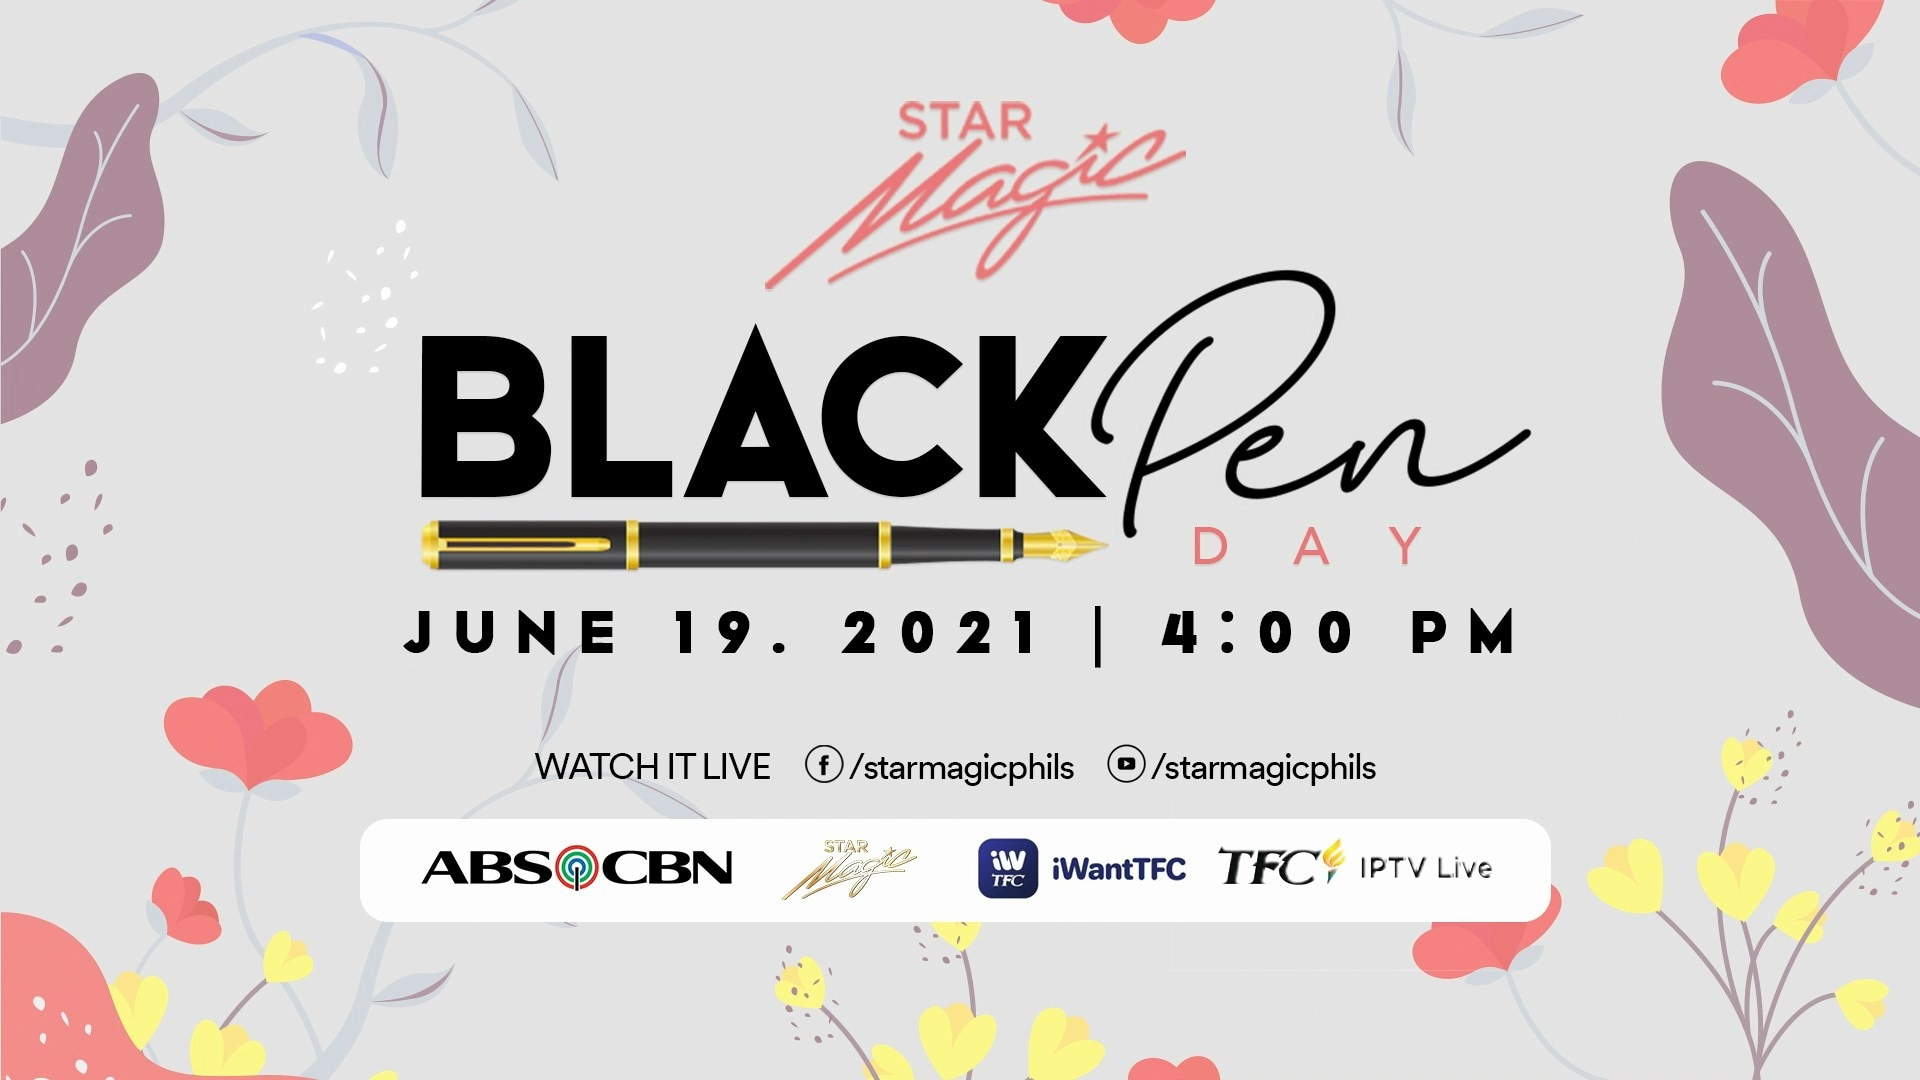 Watch over 40 artists start a new chapter with ABS CBN at the Star Magic Black Pen Day